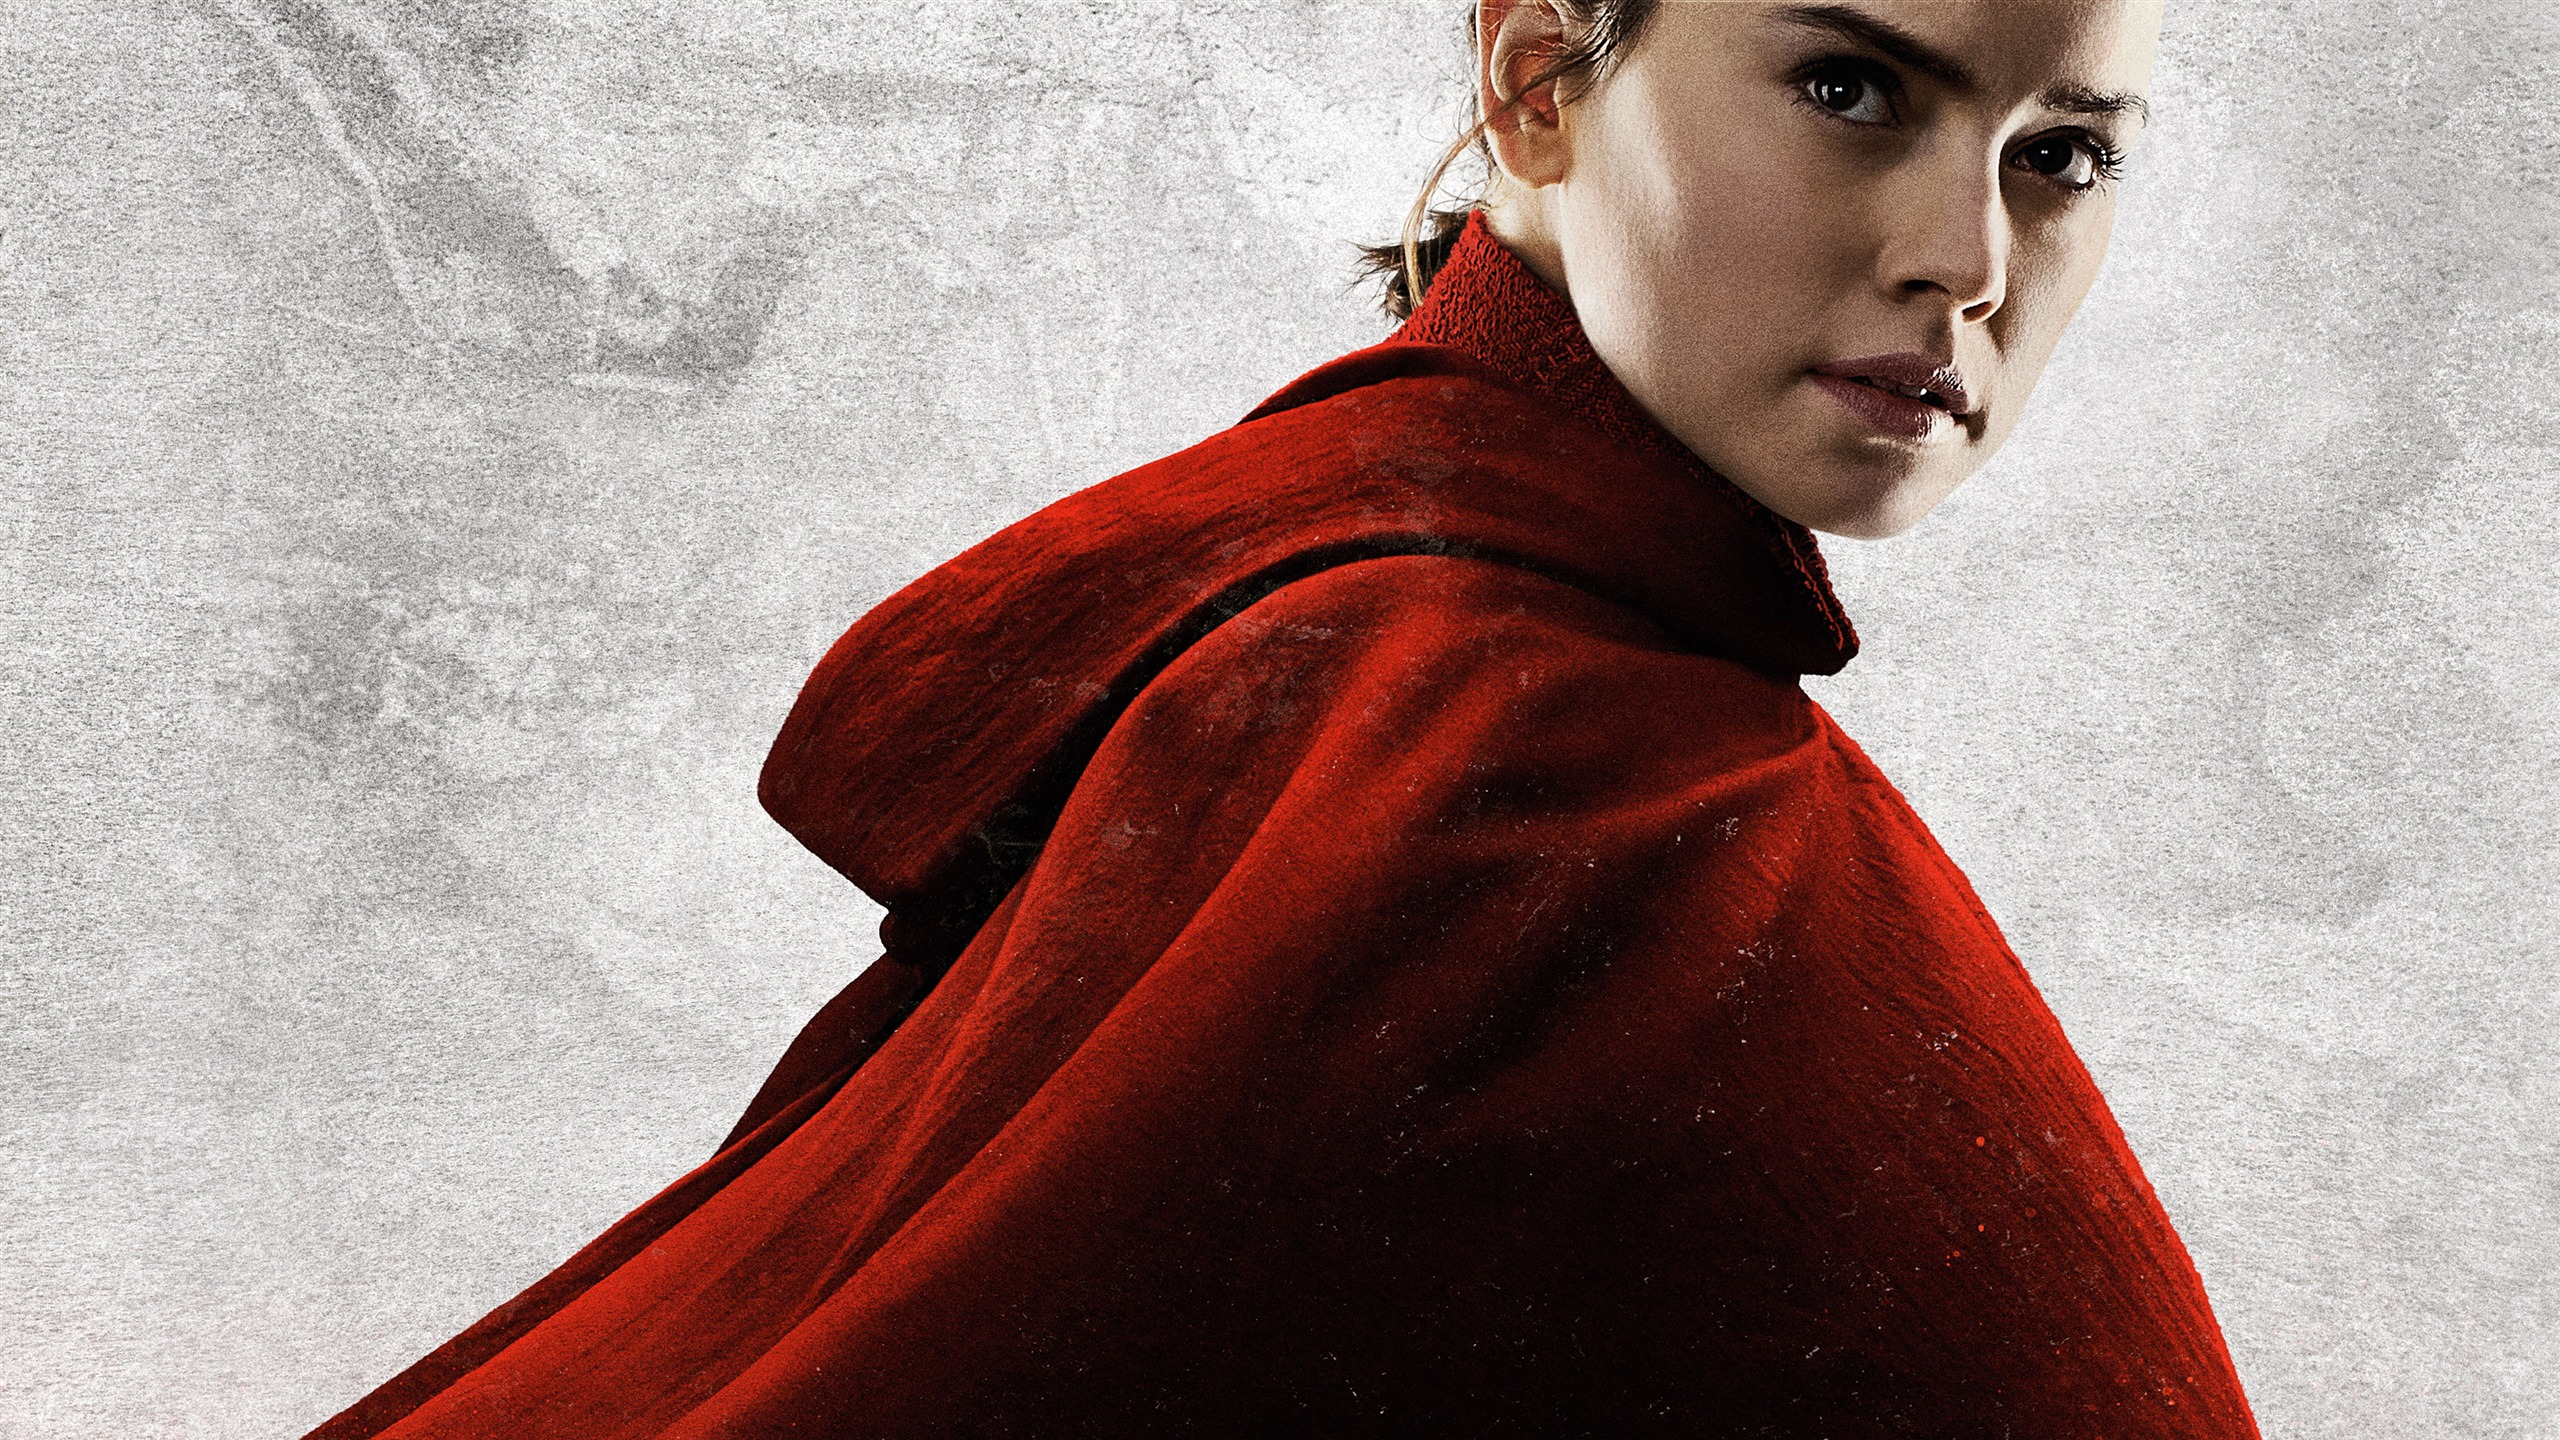 Daisy Ridley Rey 2017 Star Wars The Last Jedi Preview 10wallpaper Com